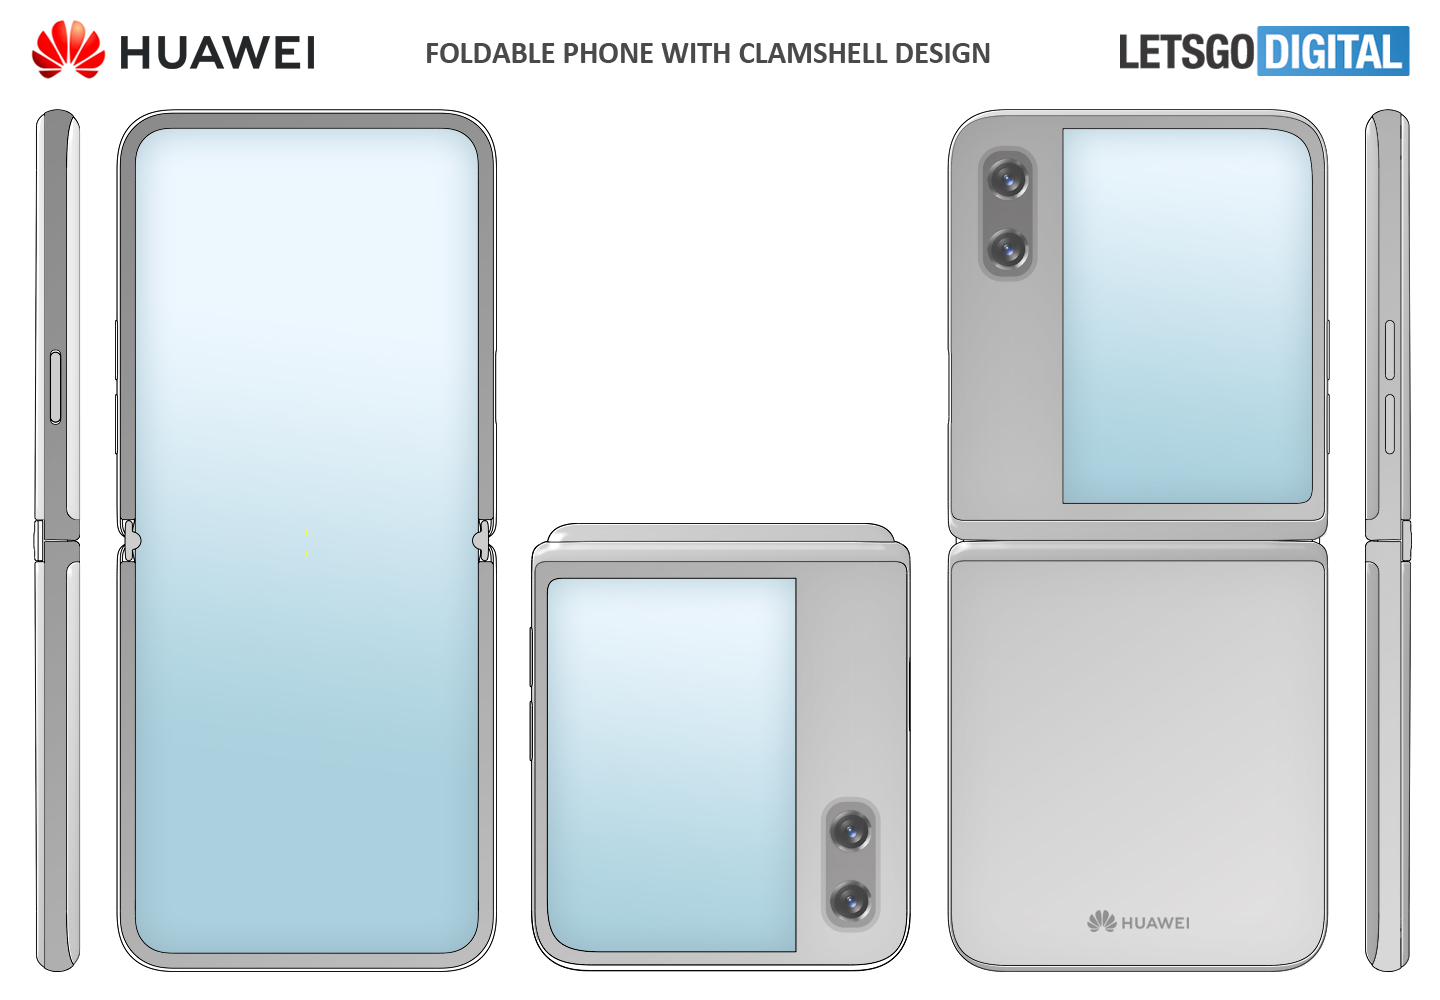 Huawei opvouwbare smartphone cover display clamshell model